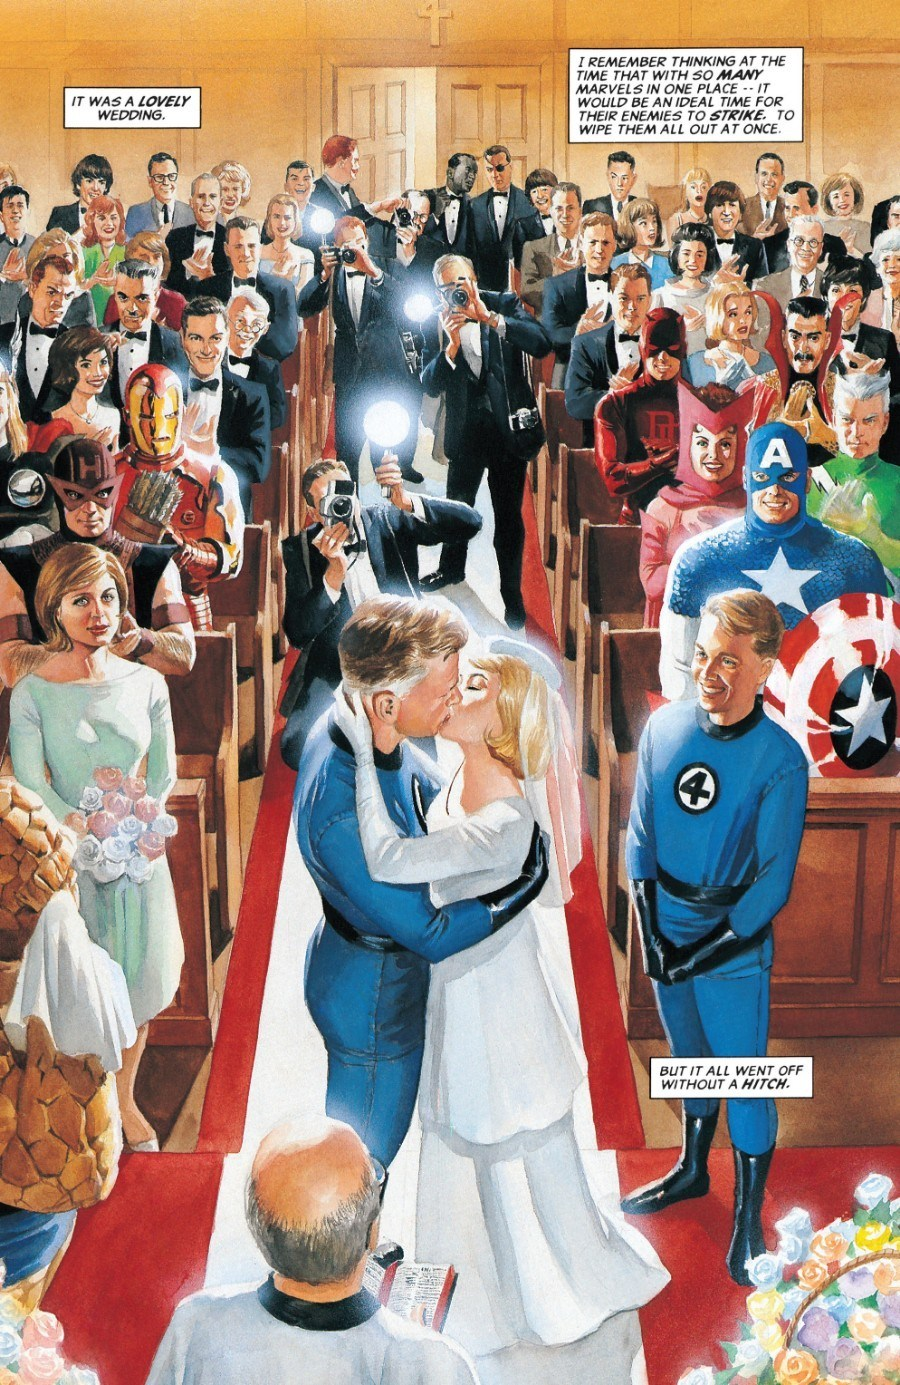 The wedding of Reed Richards and Sue Storm in Marvels #2.